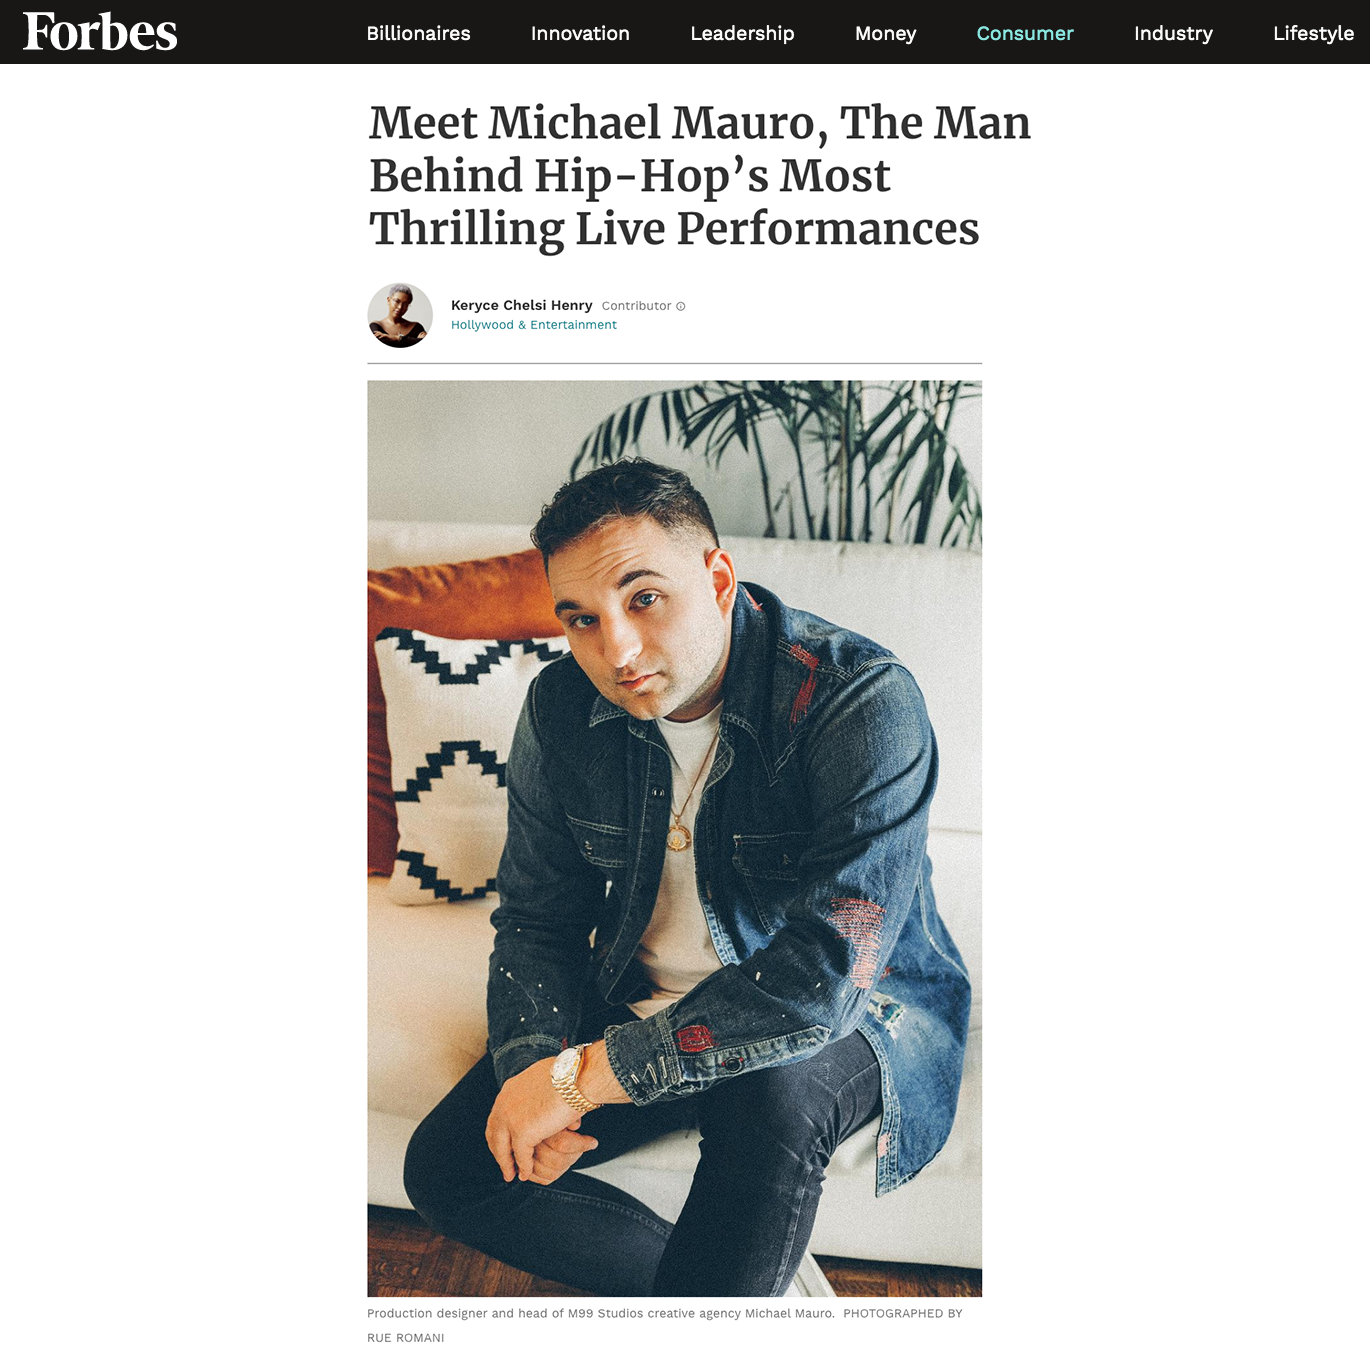 Forbes Magazine - Meet Michael Mauro, The Man Behind Hip-Hop's Most Thrilling Live Performances